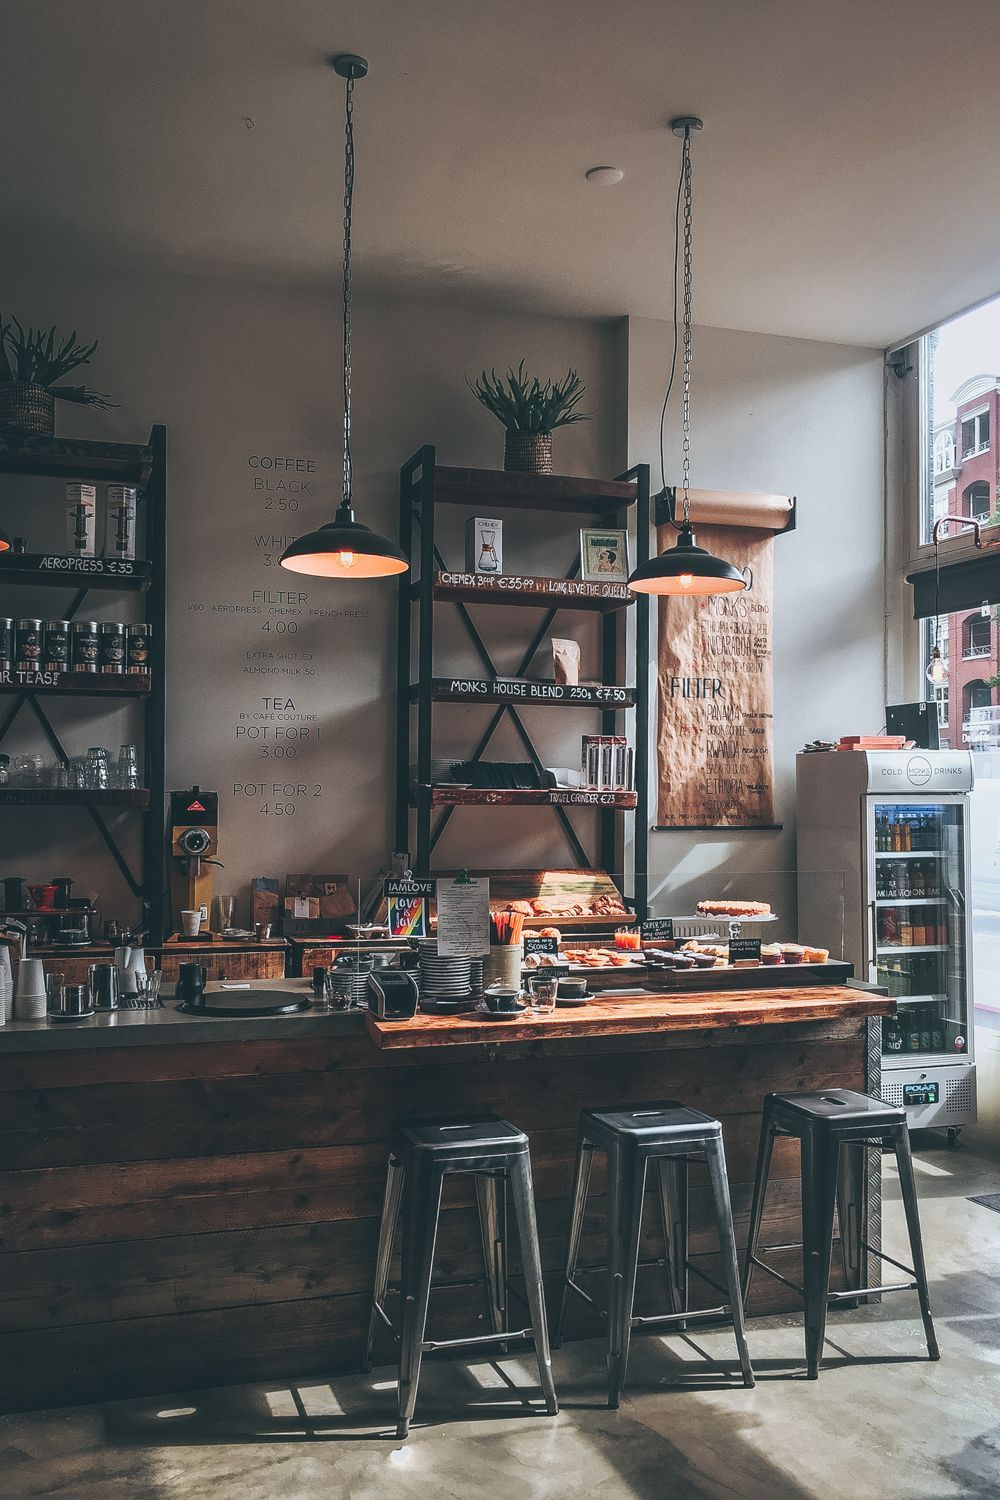 What I Really Want Is To Wake Up To Great Coffee About 30 Days In A Row Coffeeshopinteriors Mutfak Ic Dekorasyonu Firin Ic Tasarim Bar Ic Tasarimi